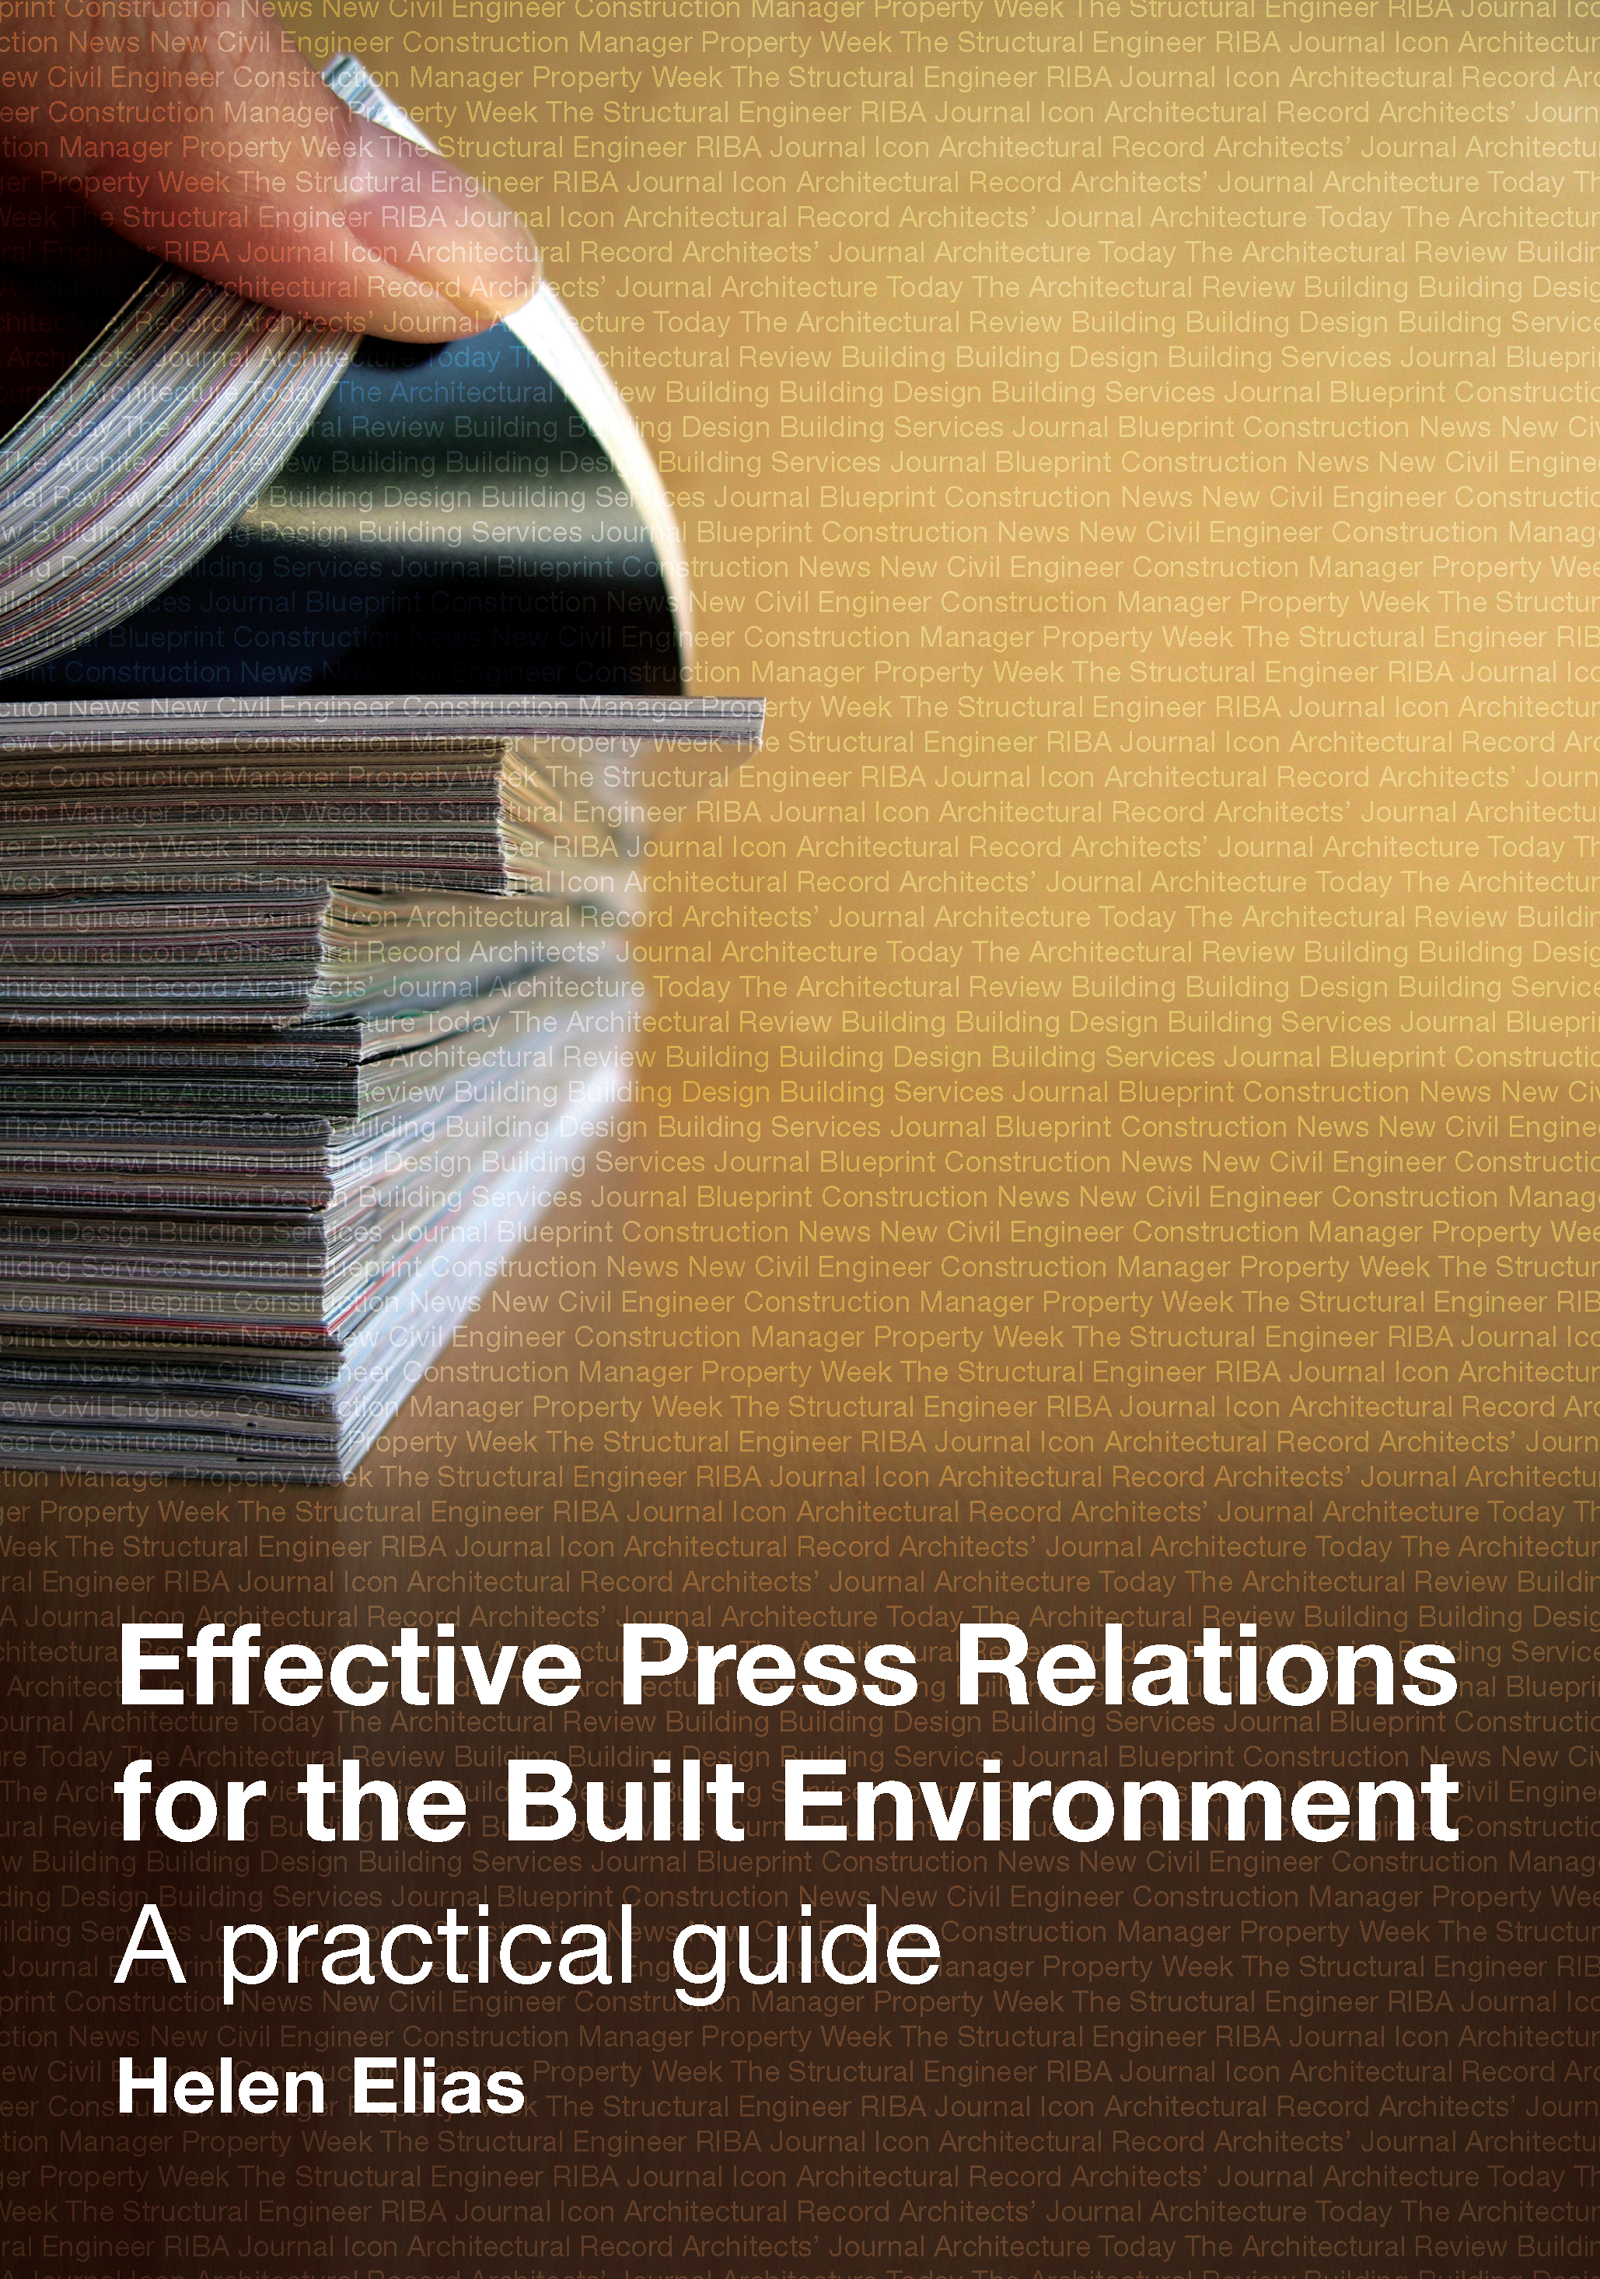 Download Ebook Effective Press Relations for the Built Environment by Helen Elias Pdf